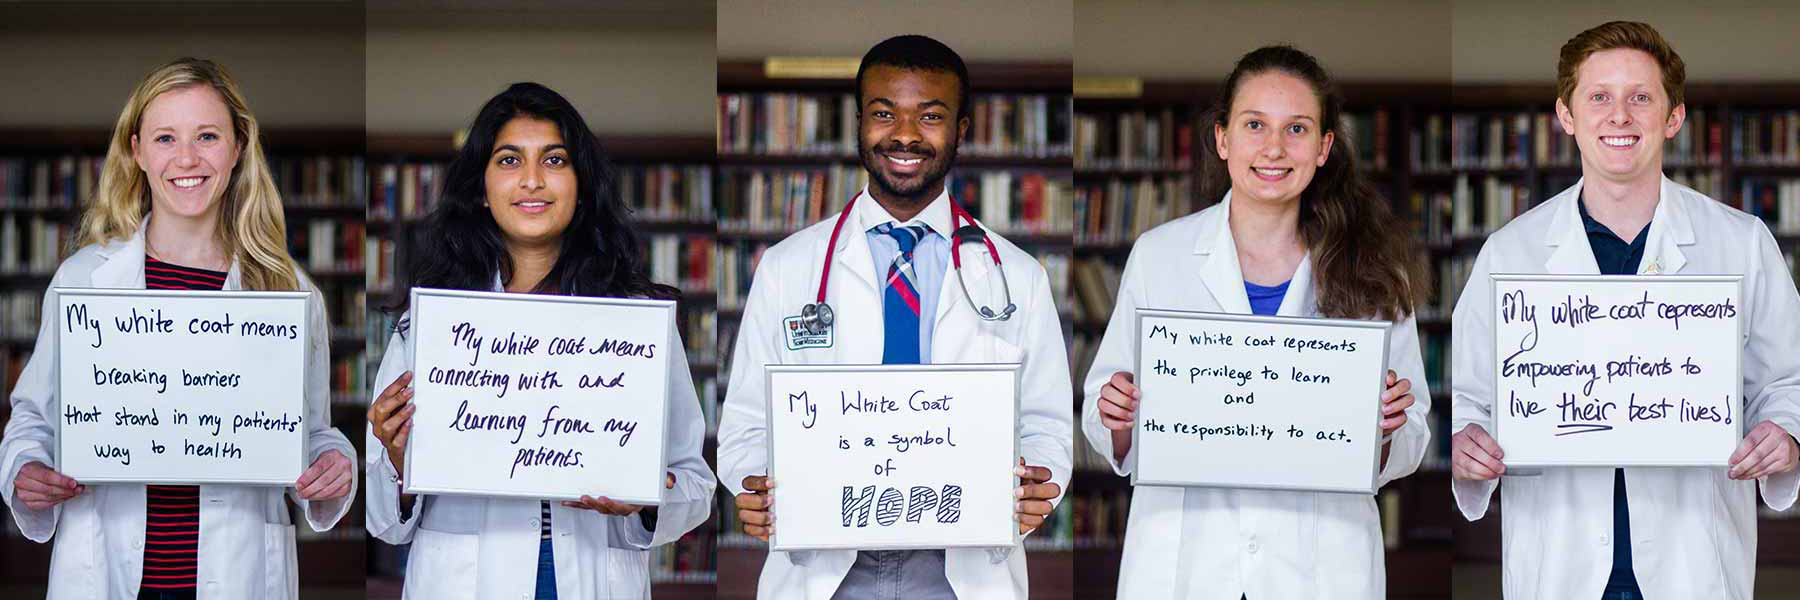 Incoming medical students hold signs stating what their white coat means to them.